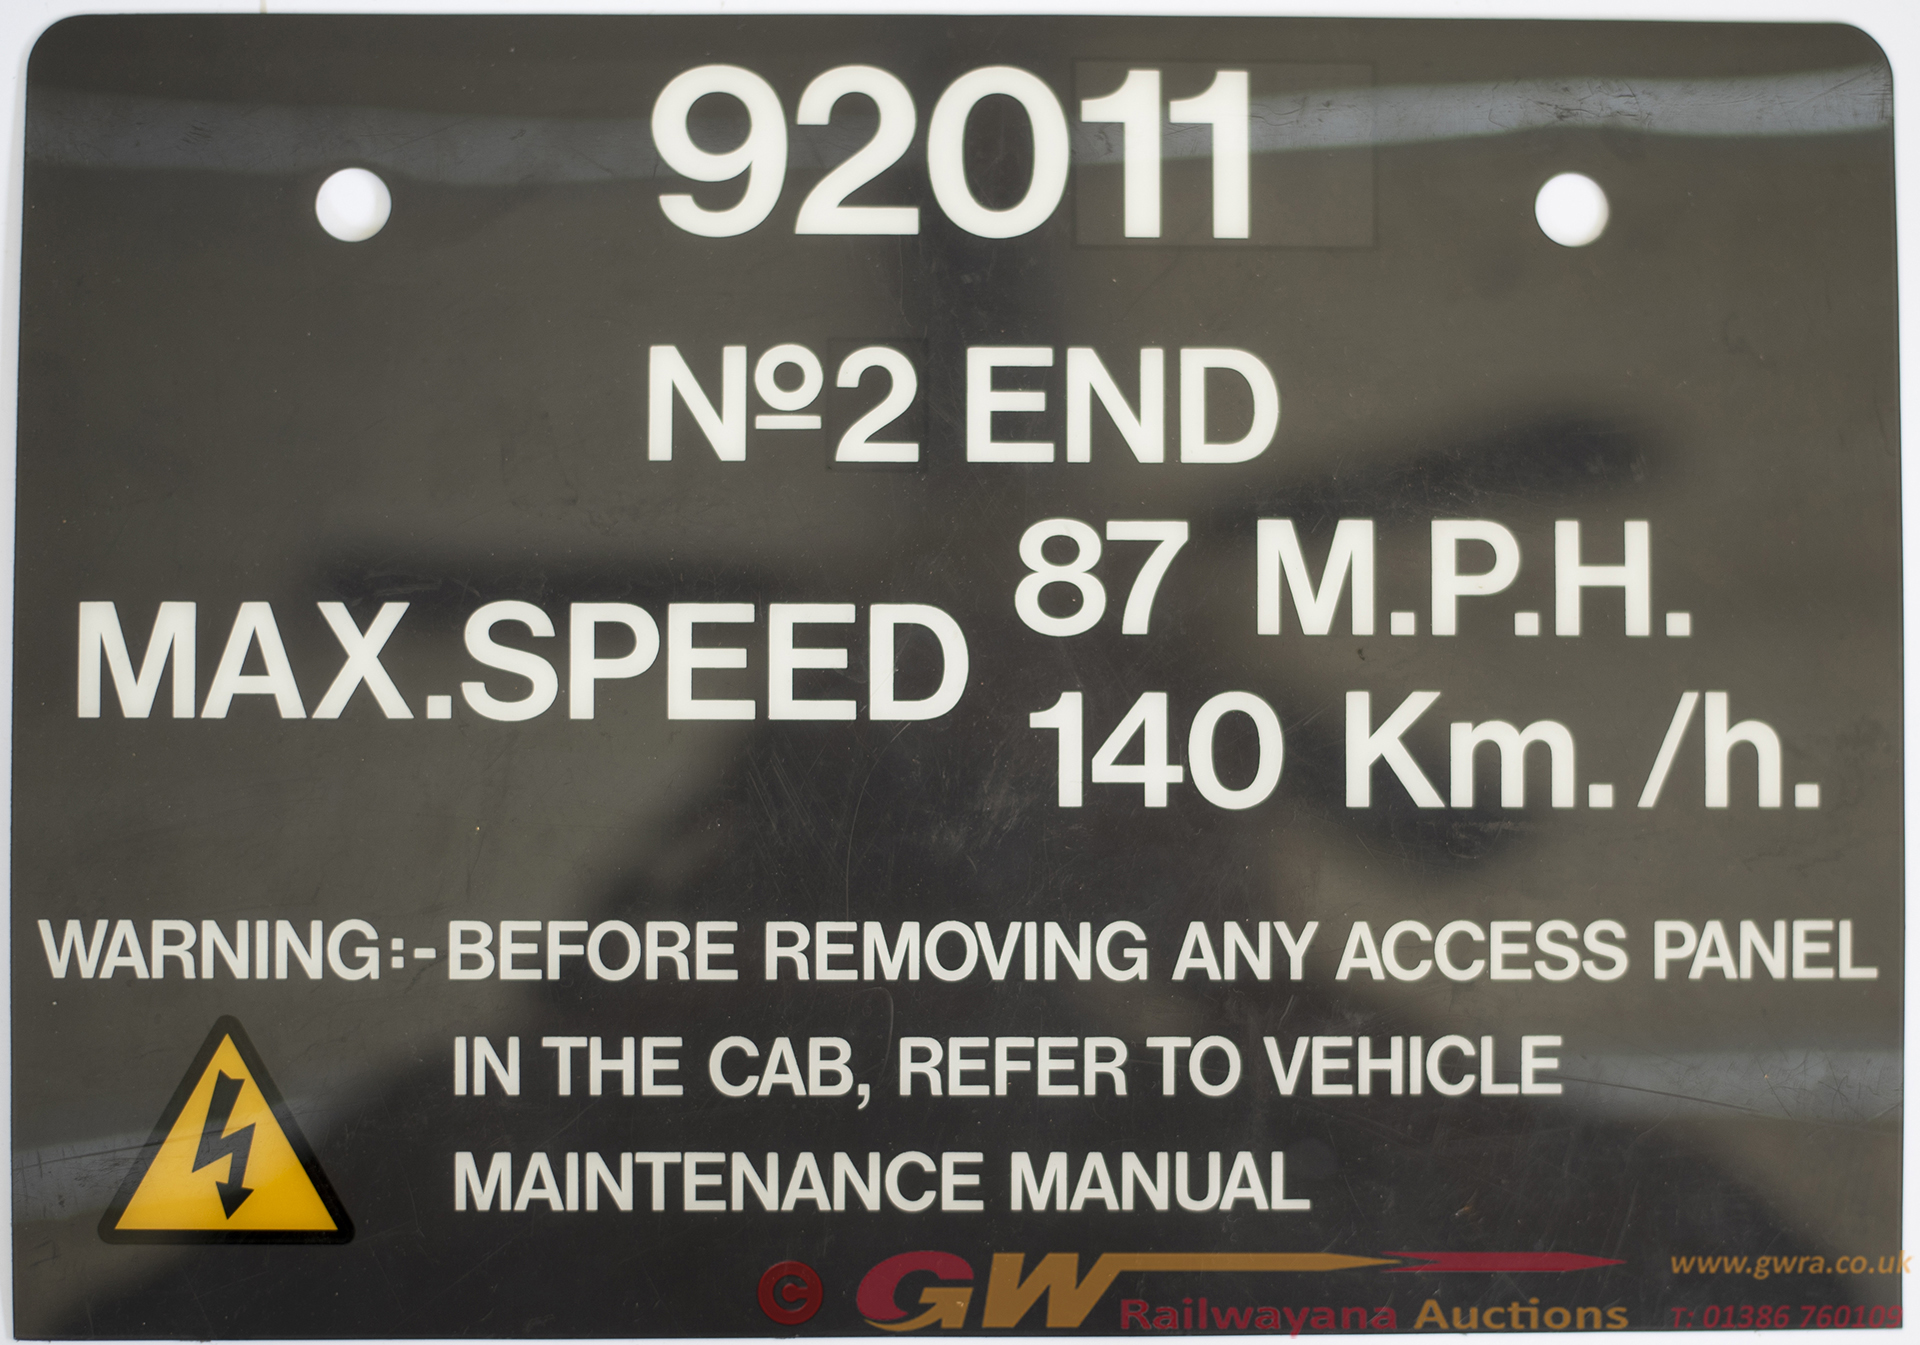 <P>Cab Plate 92011 no2 END MAX SPEED 87 MPH 140